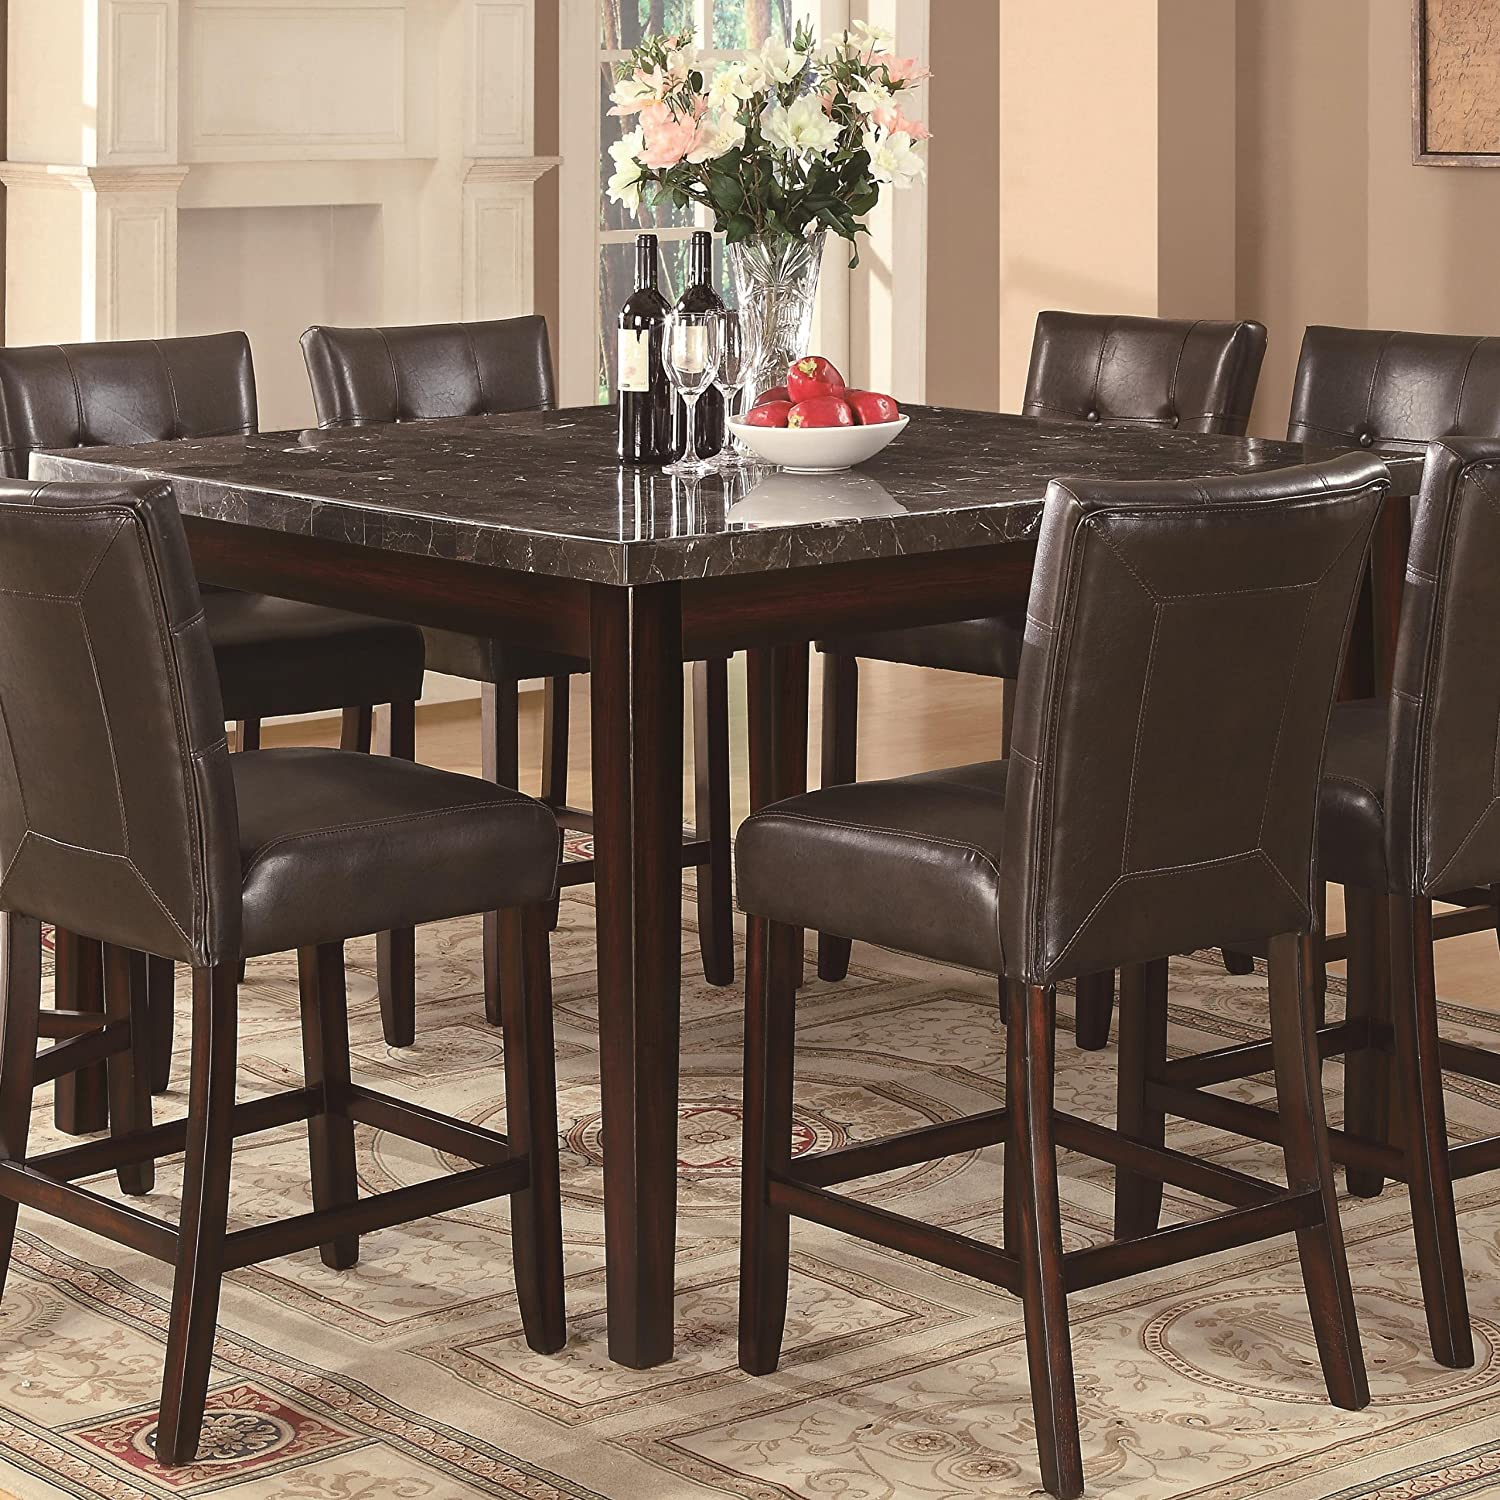 amazoncom coaster home furnishings casual counter height table cappuccino table u0026 chair sets